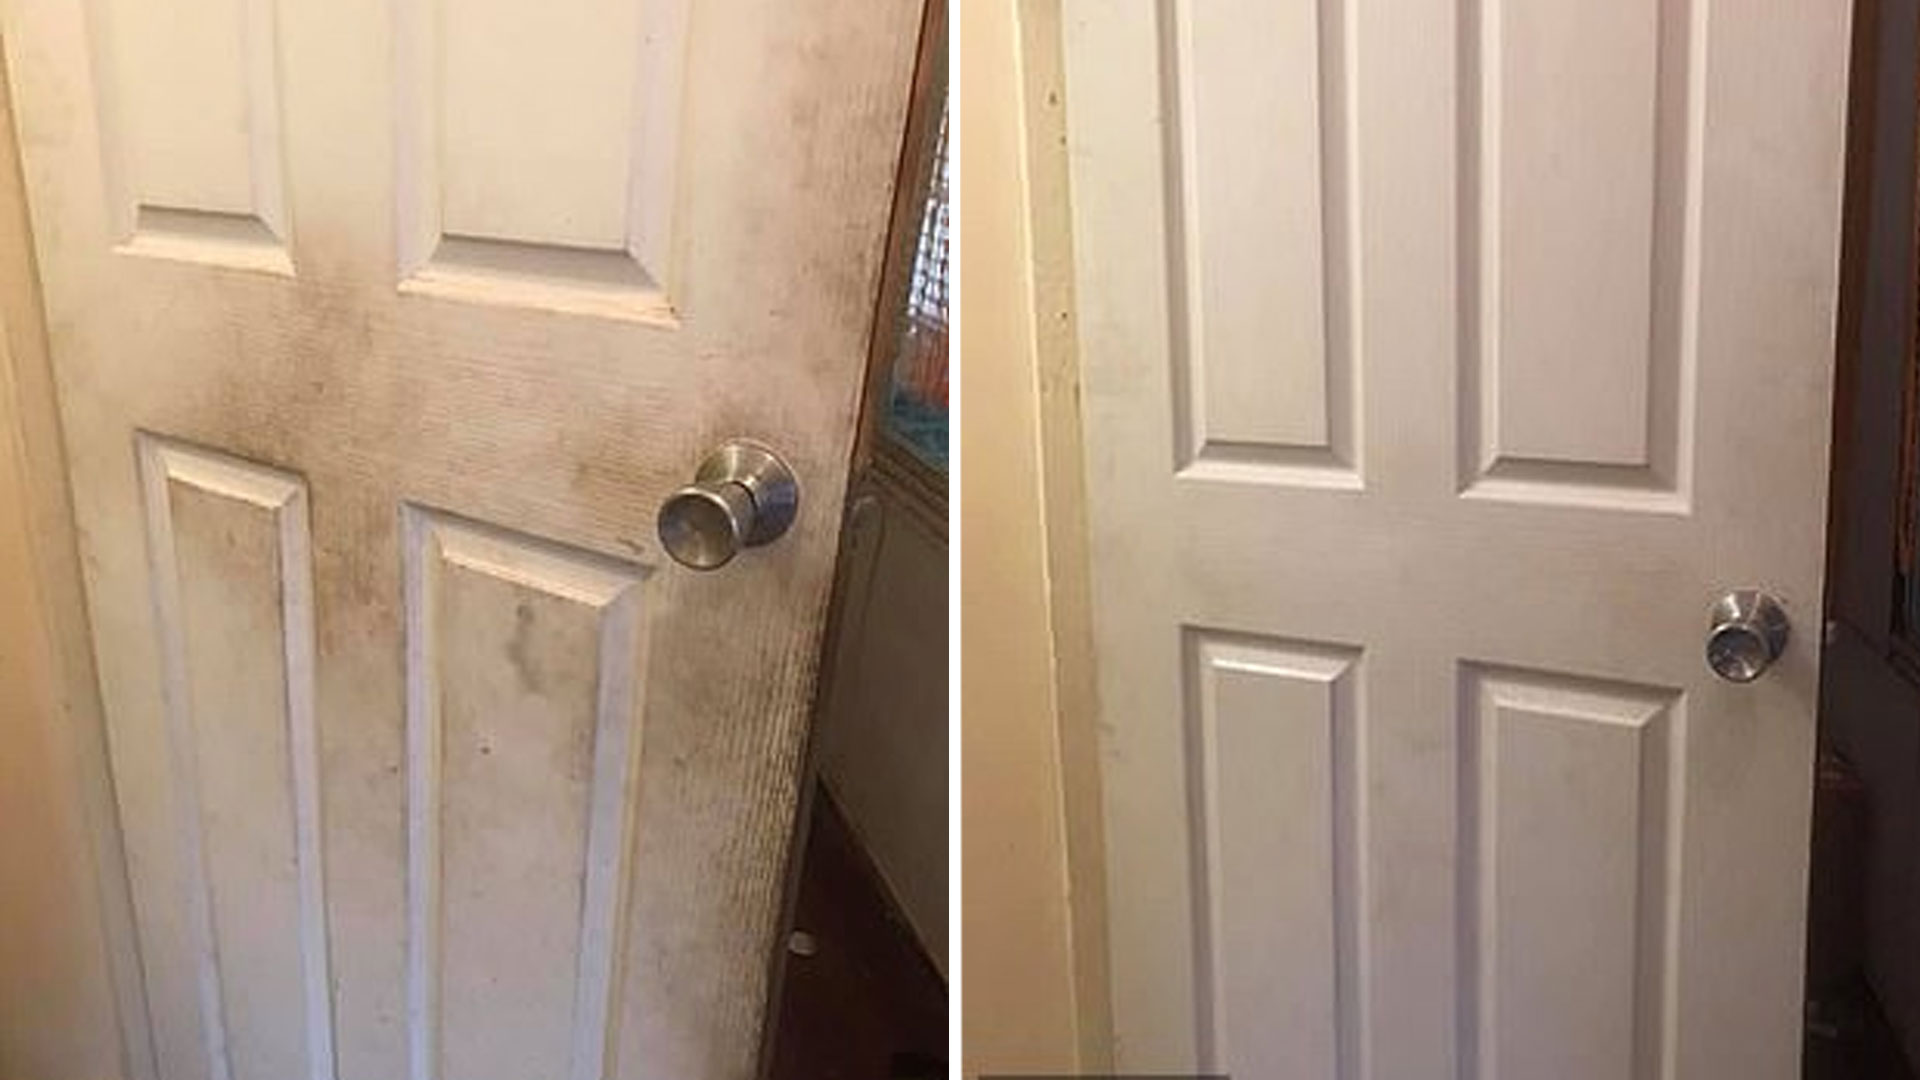 At Home Life Hack! Fabric Softener Is Actually Really Good At Cleaning Walls & Doors 1 - KIIS1065